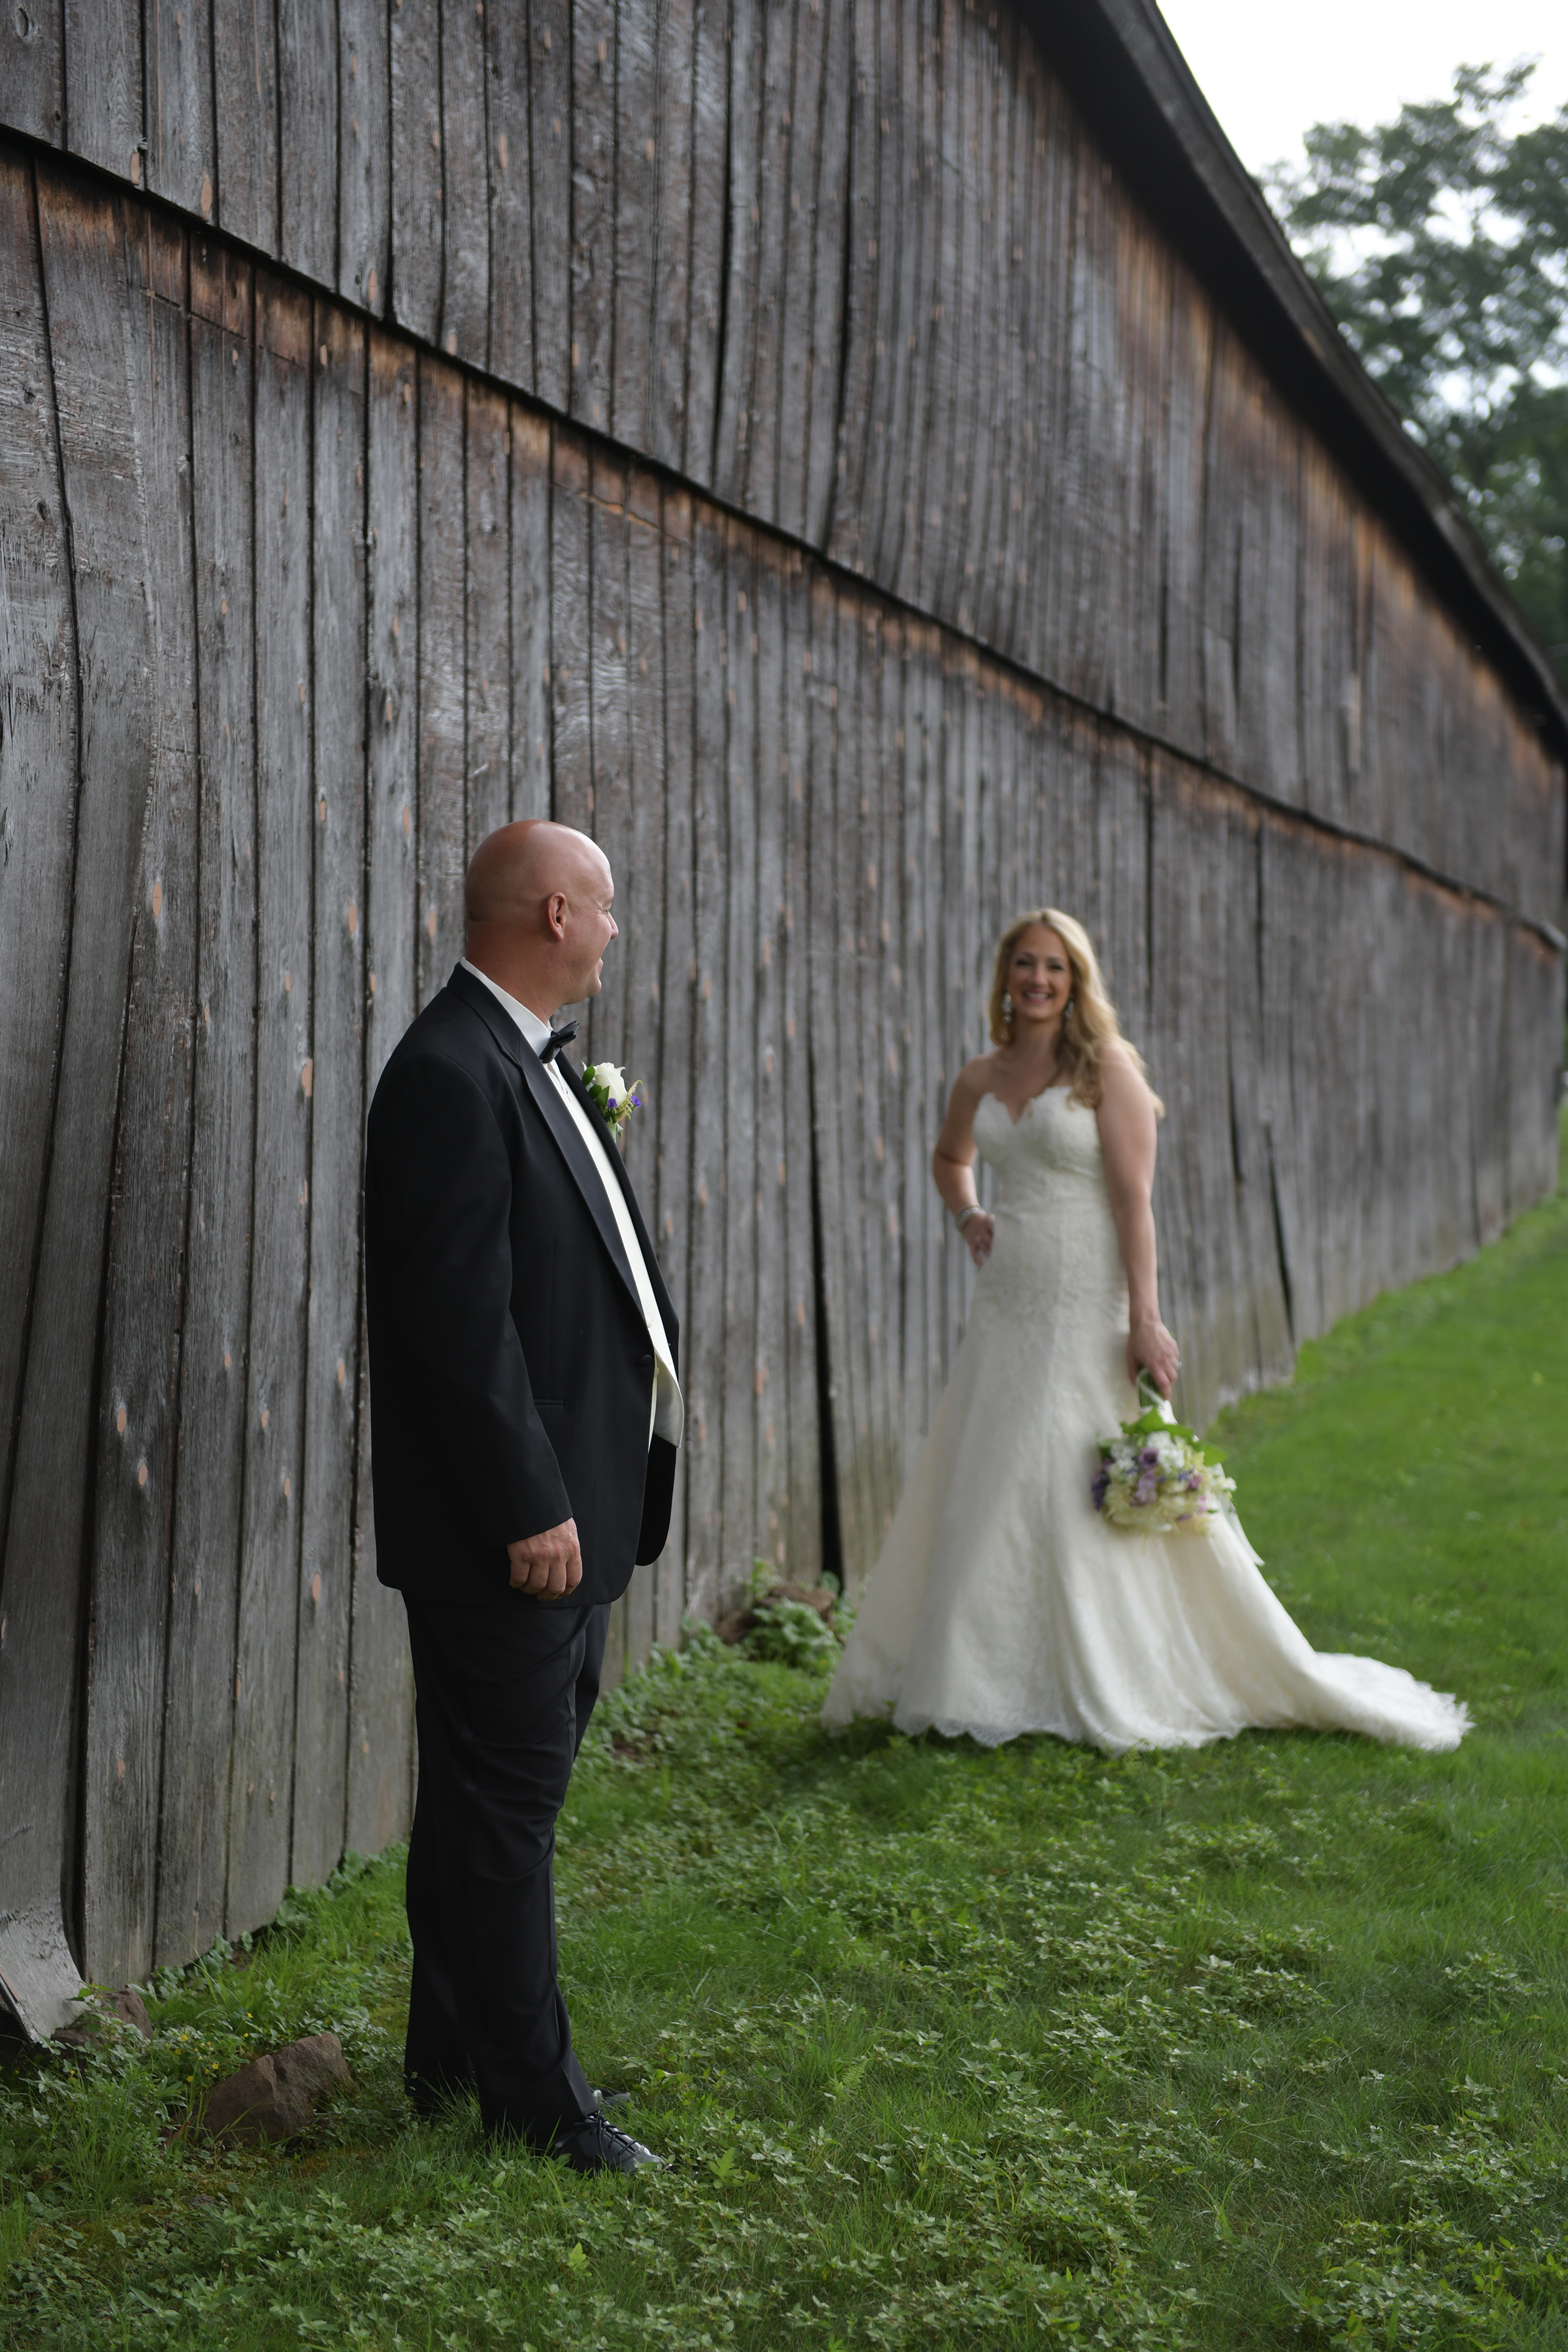 Bride and Groom posing for wedding pictures at Maneeley's of South Windsor. - Great old Barn